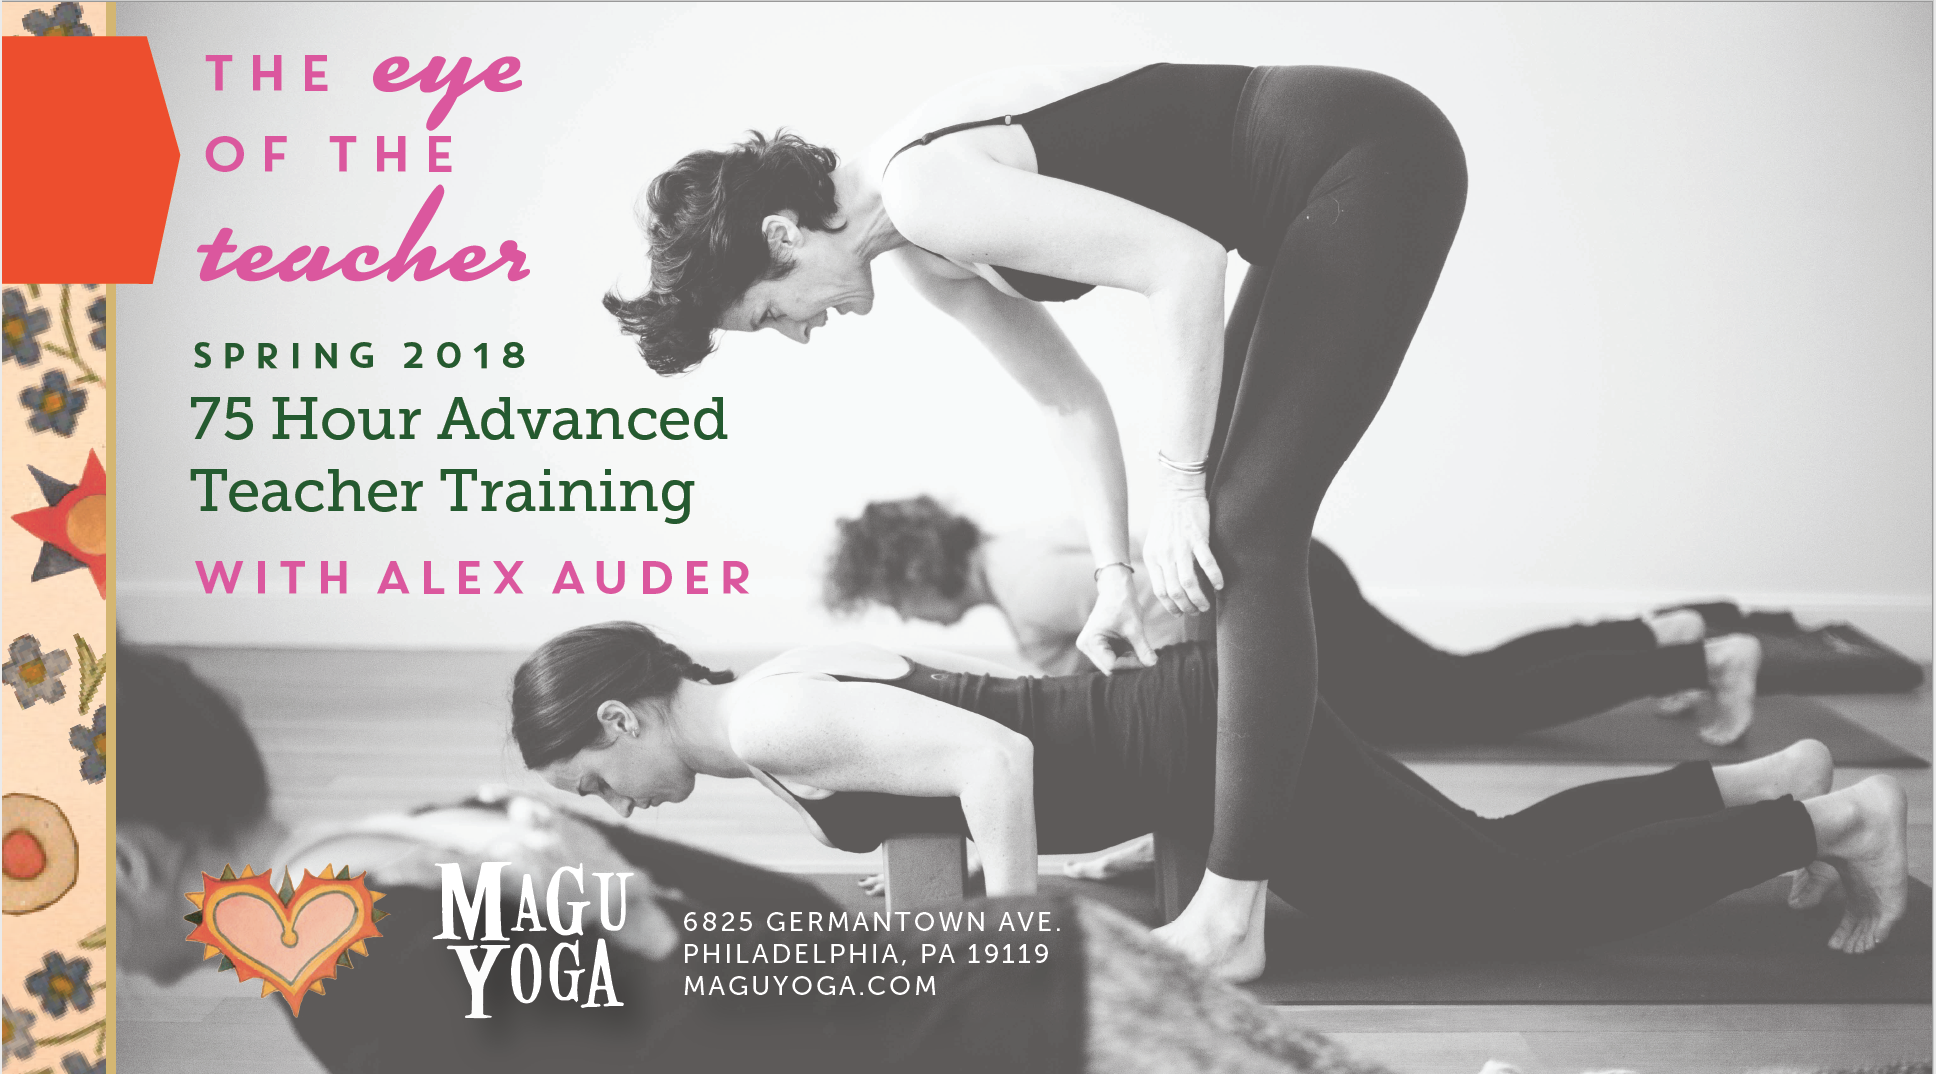 Magu Yoga Teacher Training Postcard